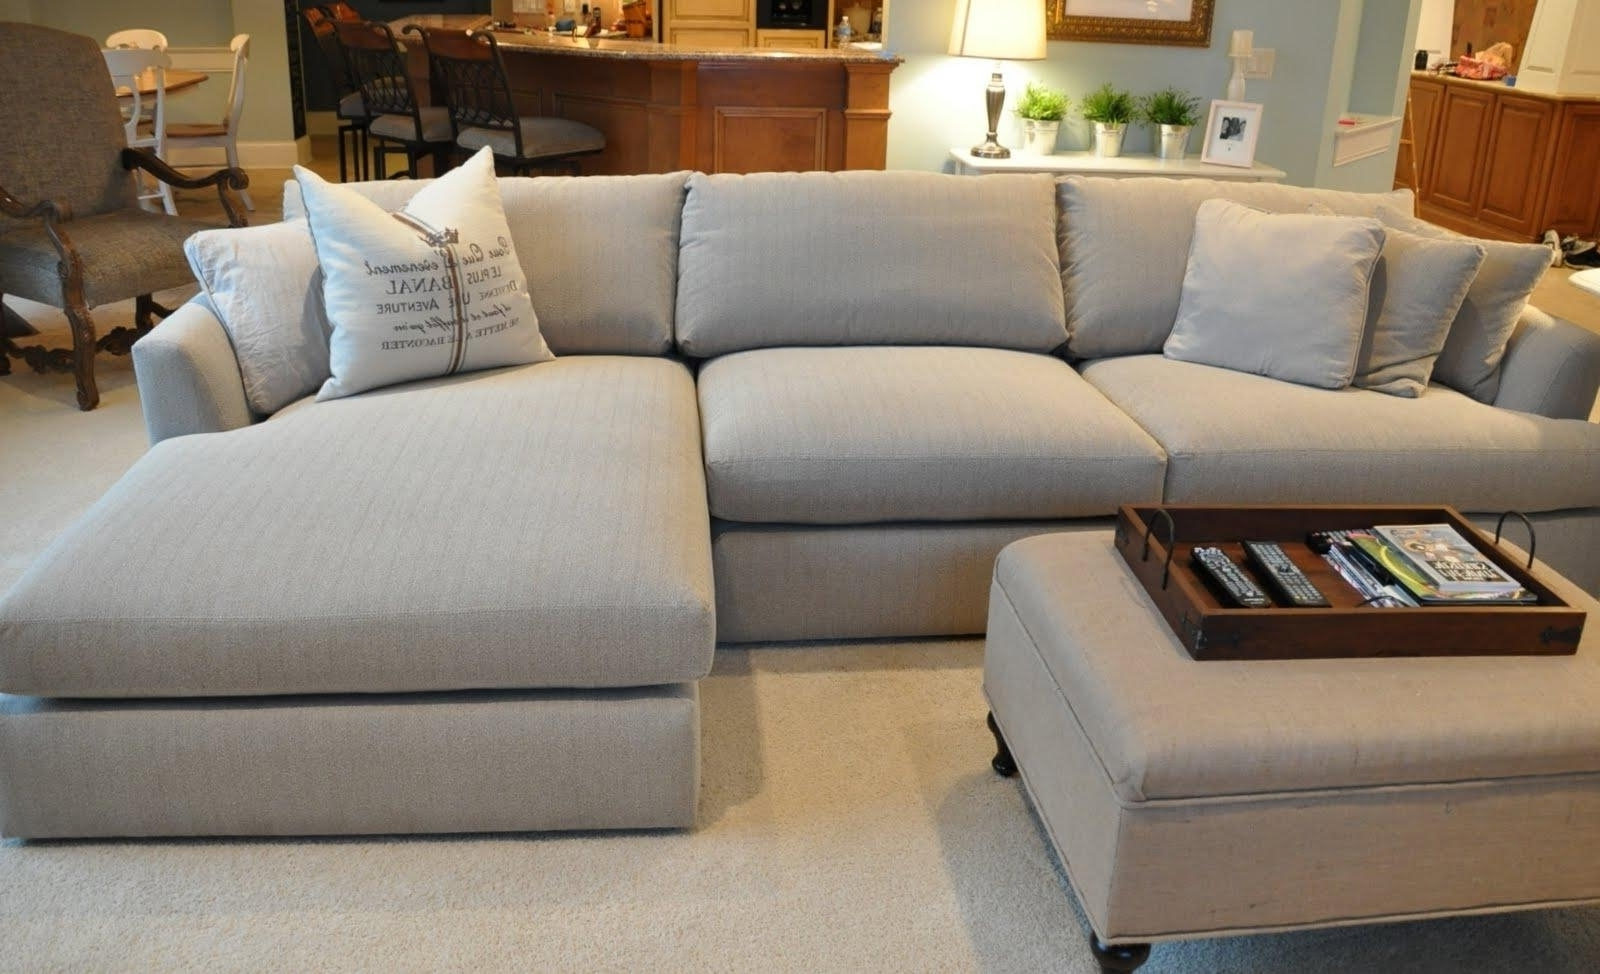 wide sofas sofa set designs 5 seater gallery of seat sectional view 3 20 photos current for sets pull out corner couch